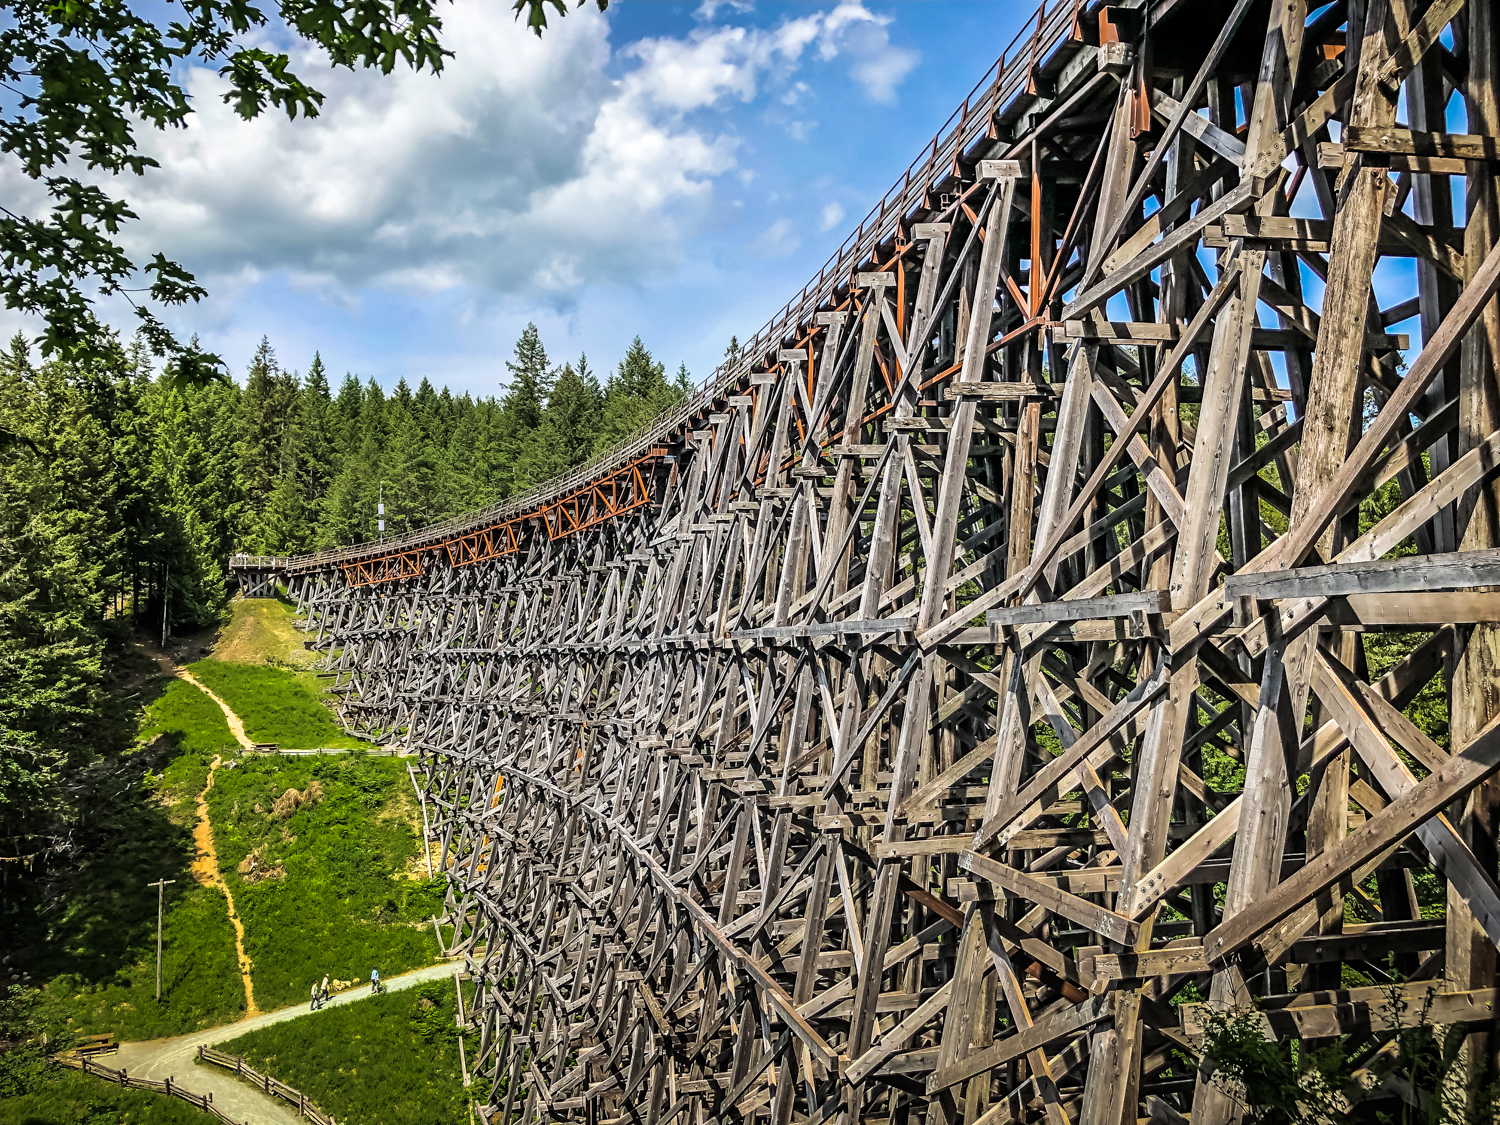 Kinsol Trestle, Vancouver Island